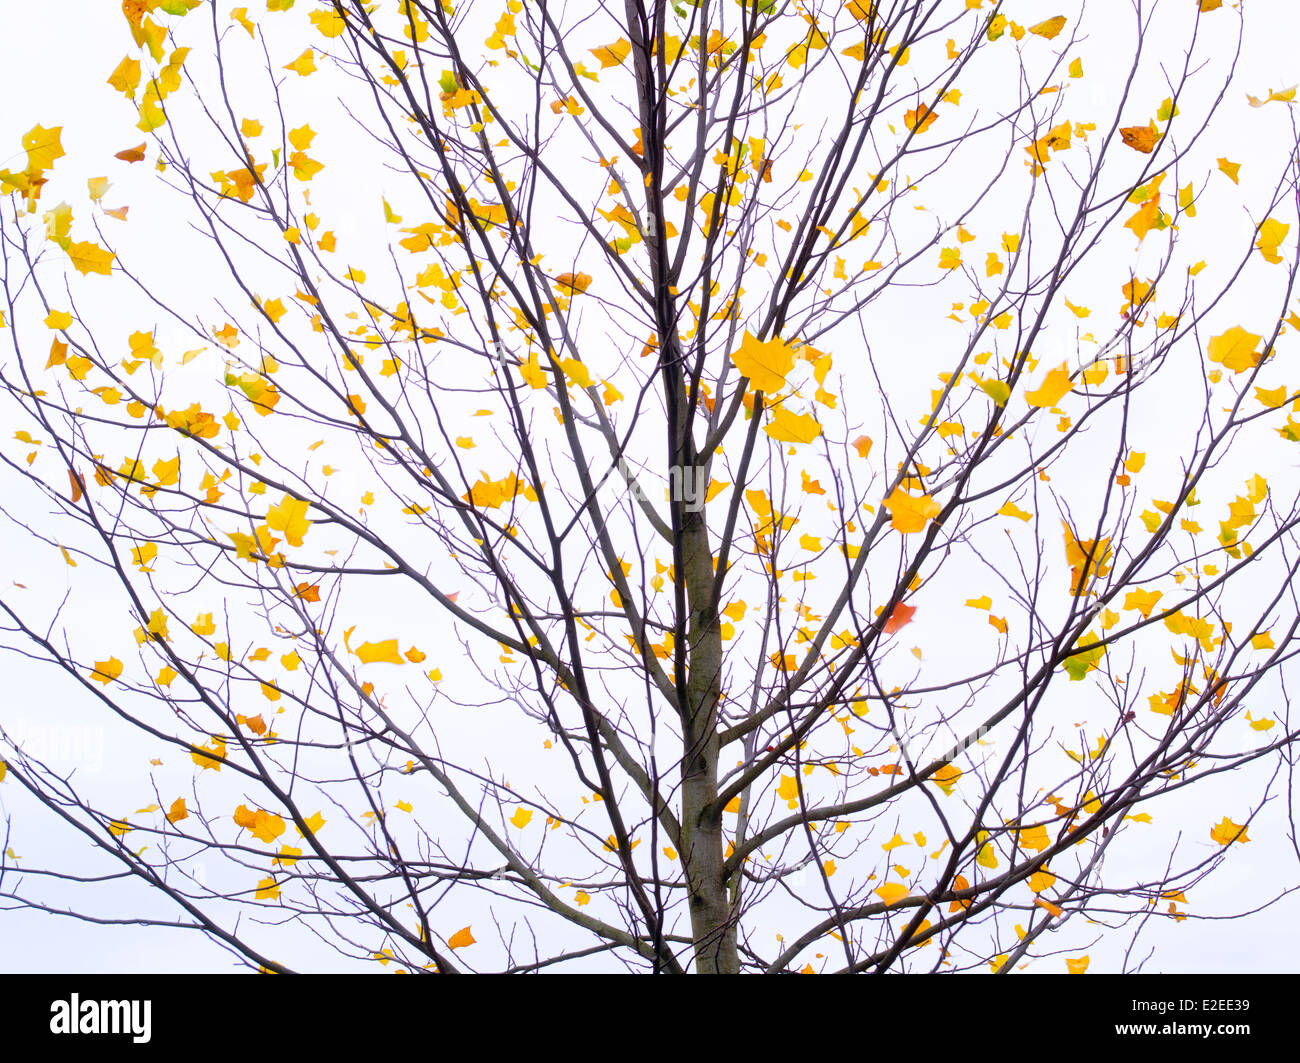 Maple tree with just a few autumn leaves. Wilsonville, Oregon - Stock Image